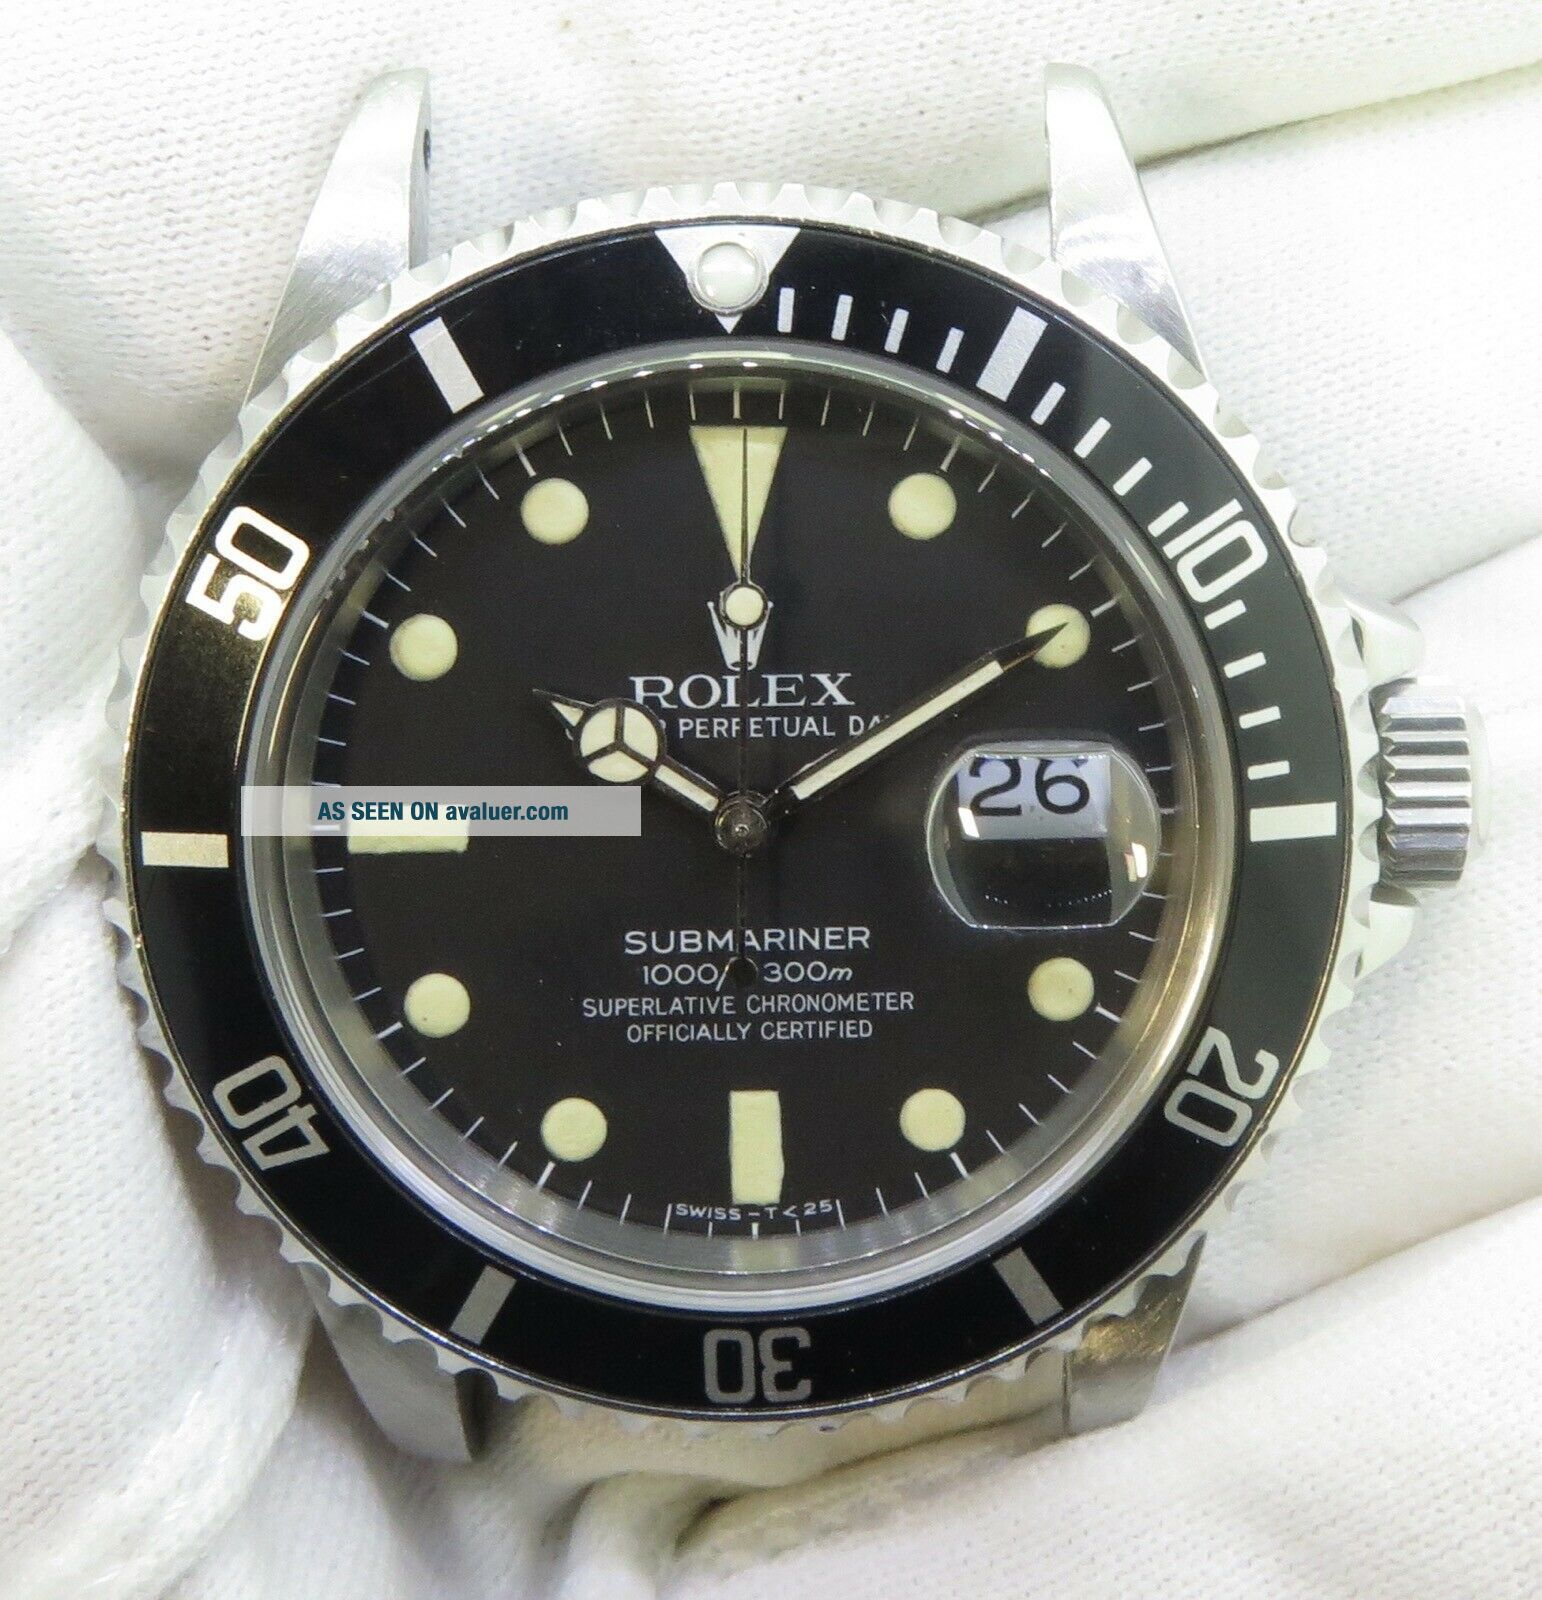 1982 Vintage Rolex Submariner 16800 Steel Wrist Watch With Matt Dial $1 NO RES